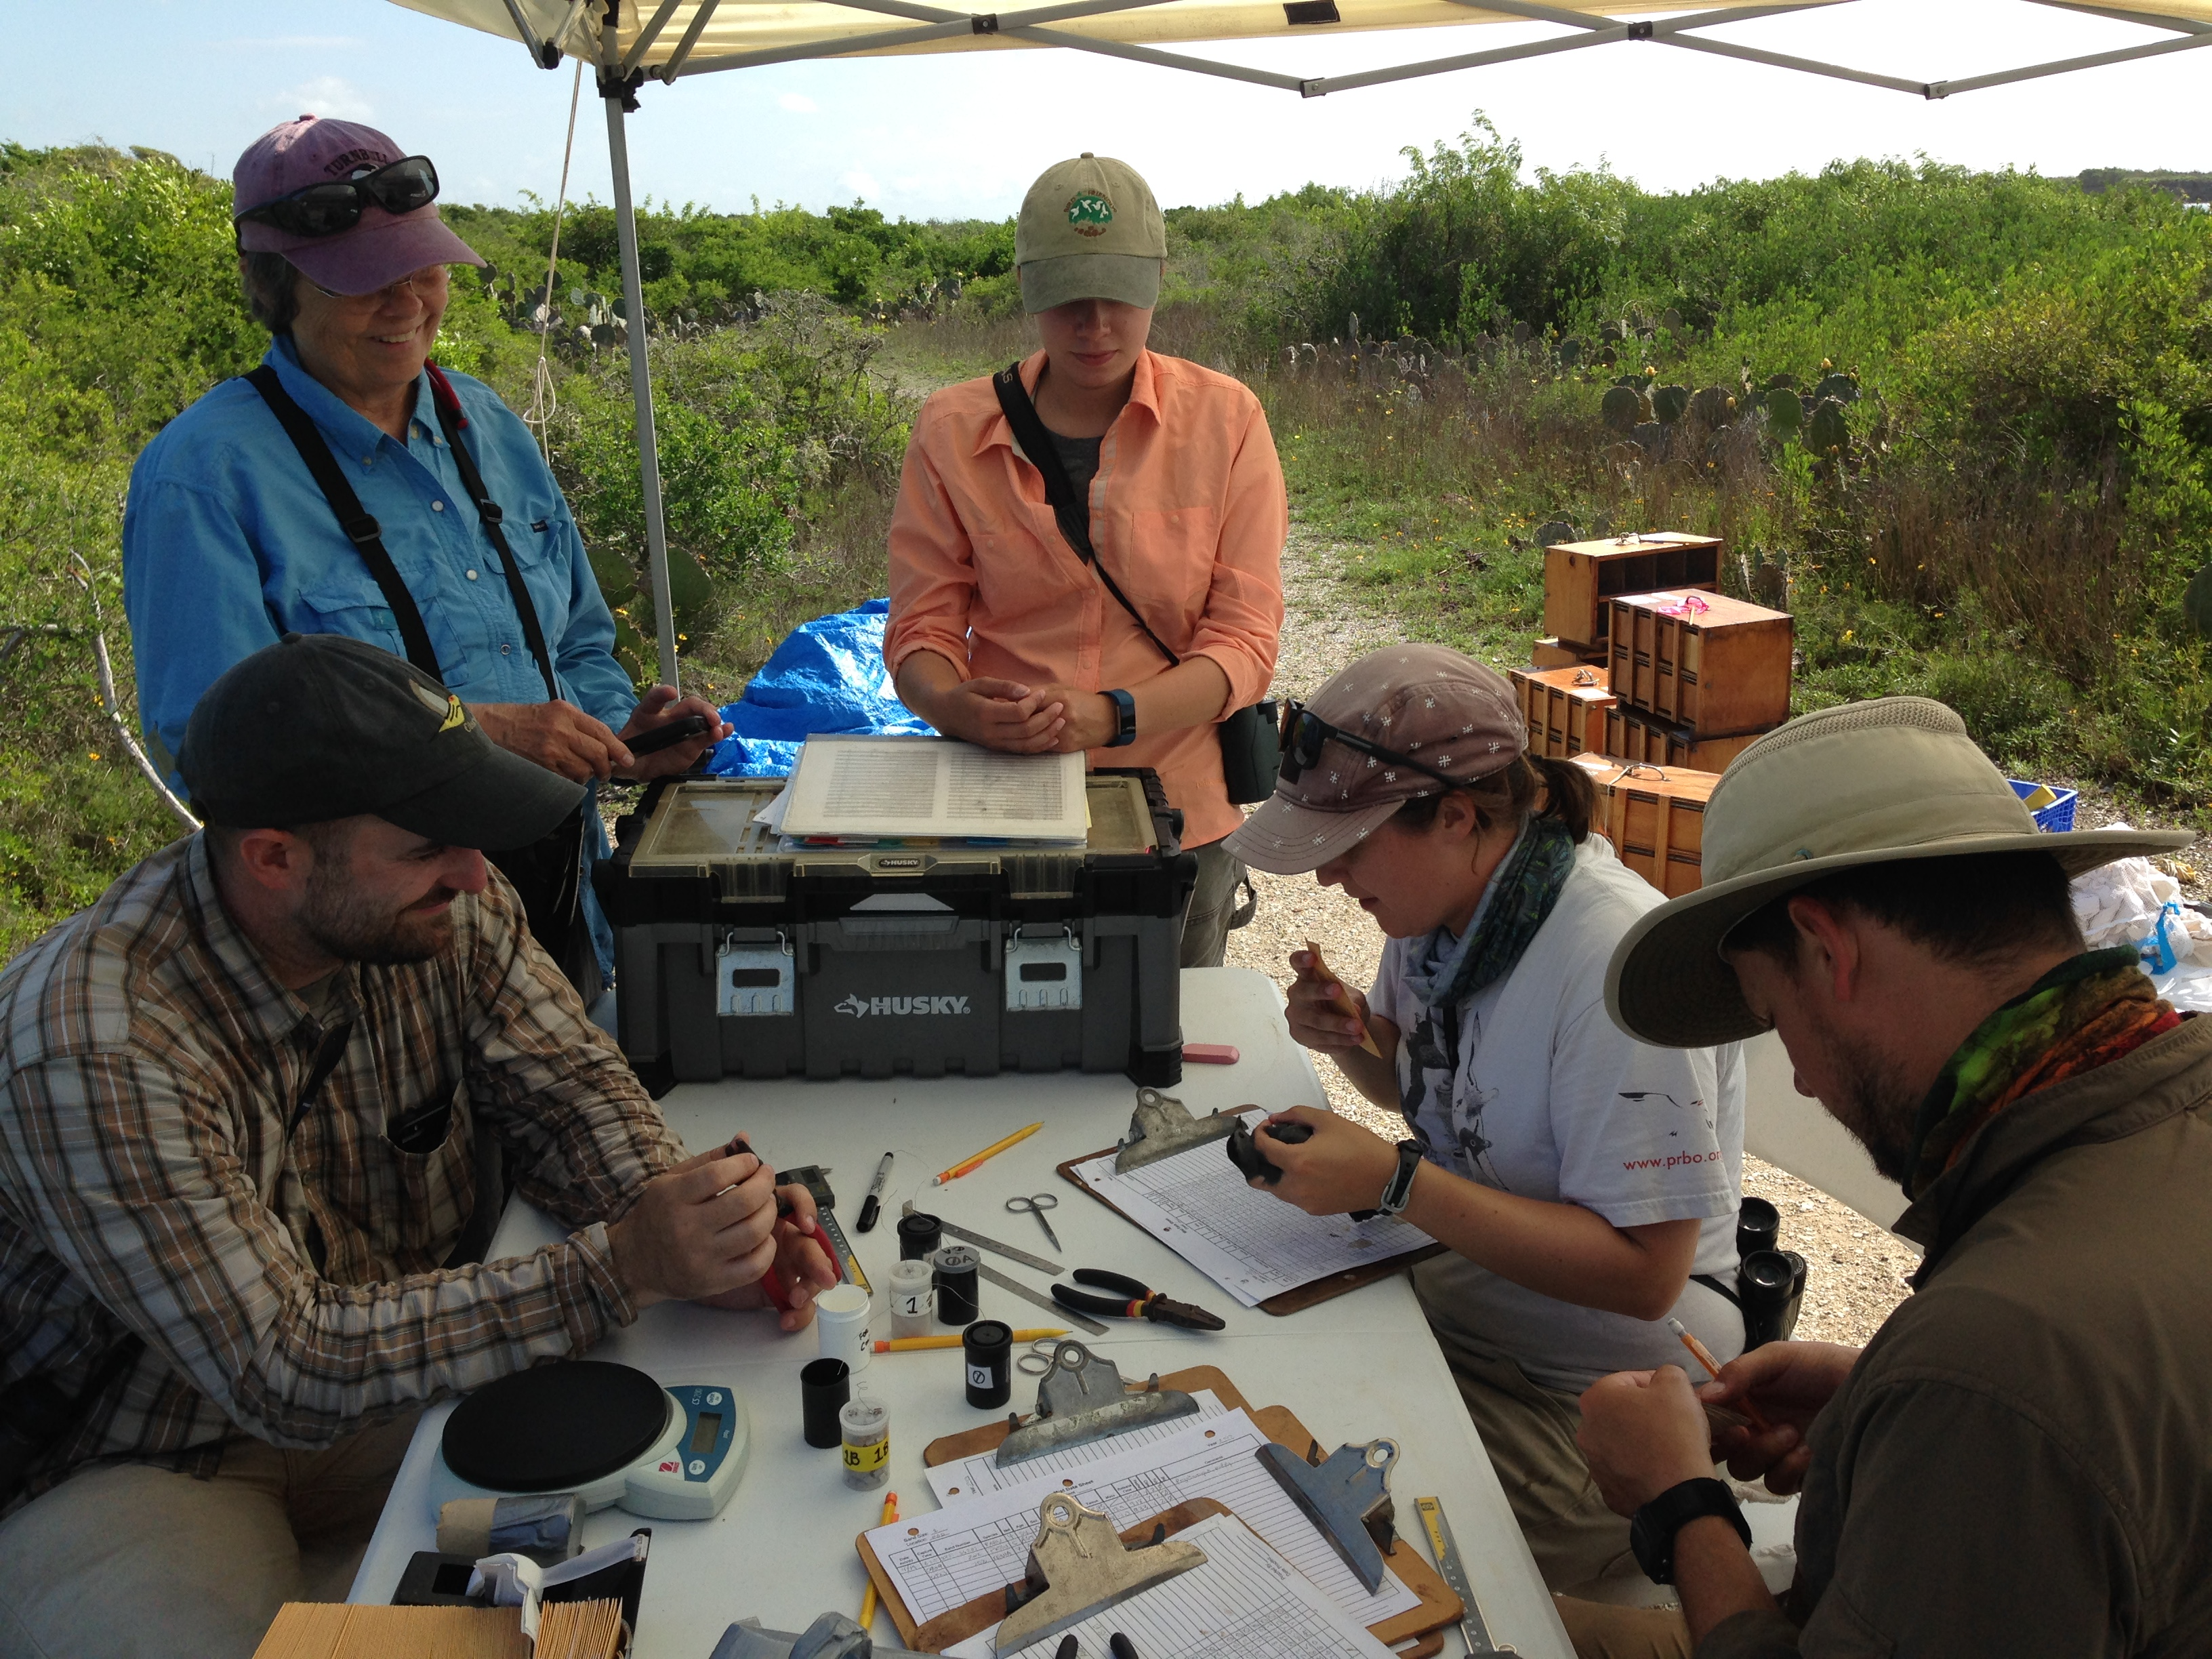 A group of scientists sits around a table in the field making notes on clipboards